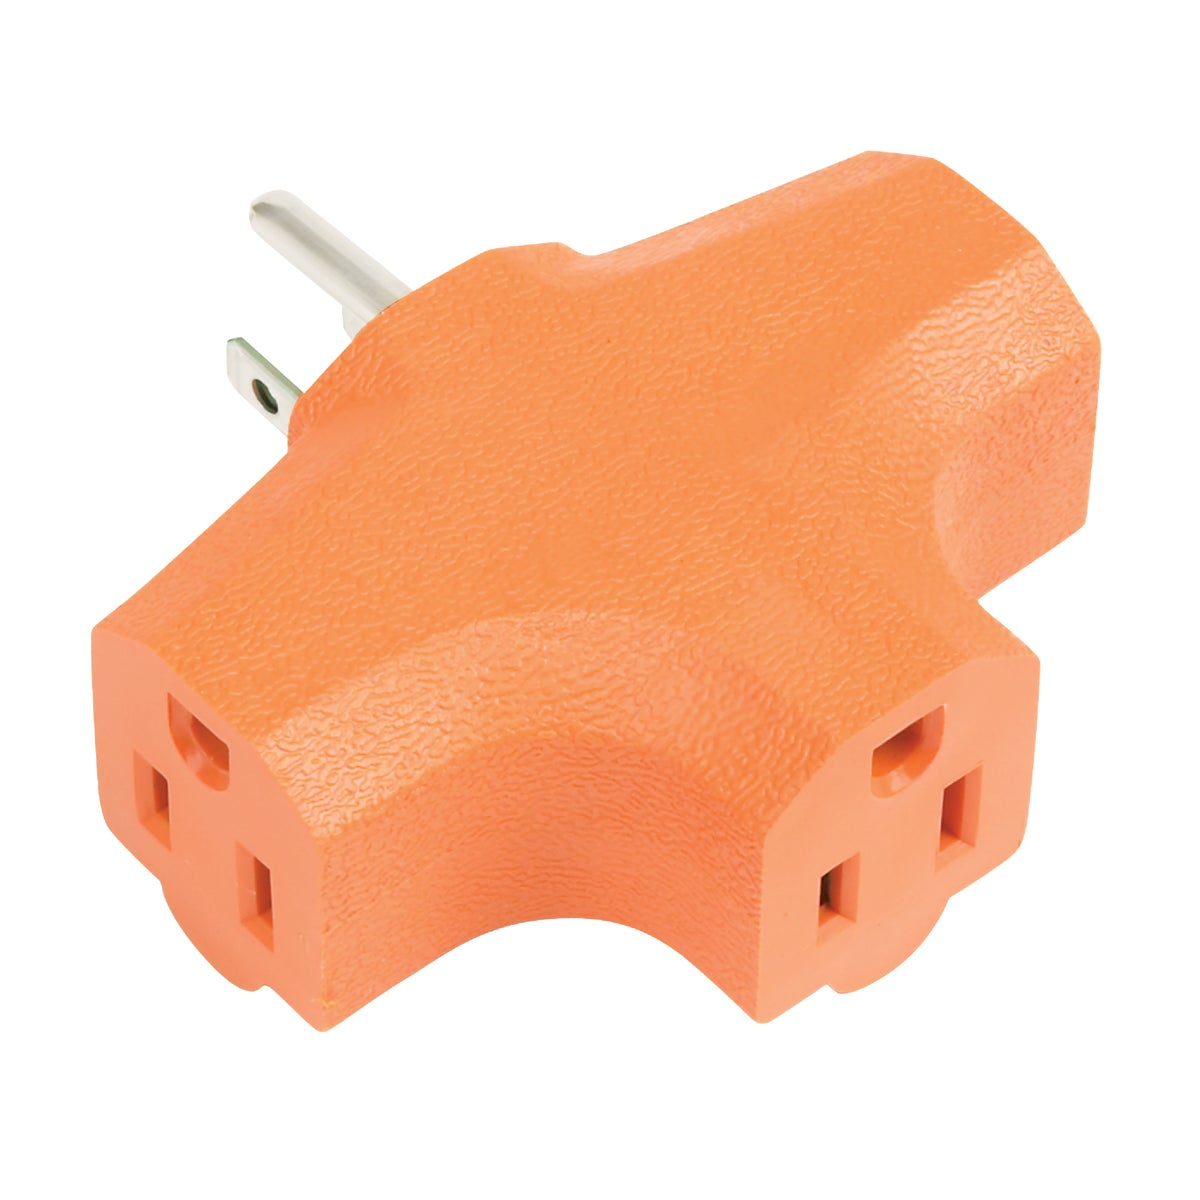 BULK ORANGE CUBE TAP - ADAPTER-OR-BK by Do it Best